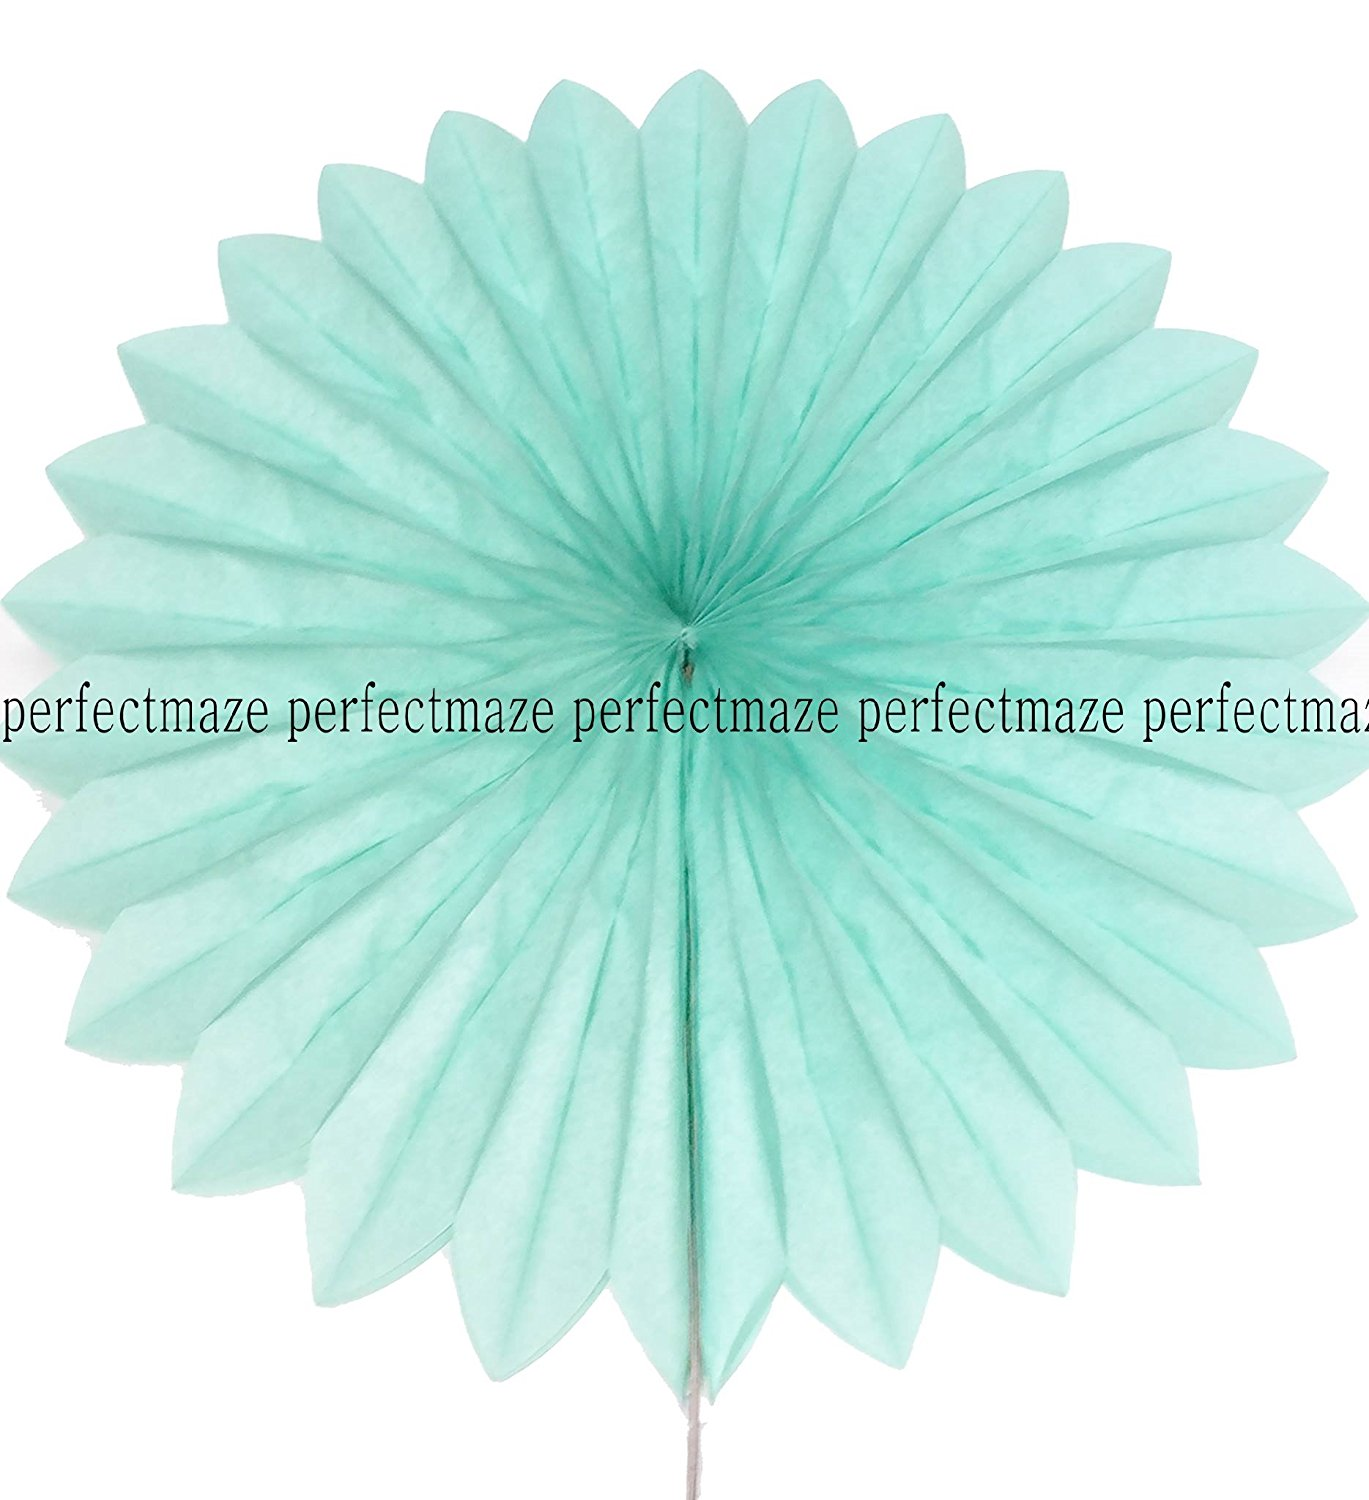 Perfectmaze 5 Piece 14 Inch Tissue Paper Pinwheel Hanging Fan for Wedding Party Engagement Baby Shower Decoration (Mint) By Perfect Maze